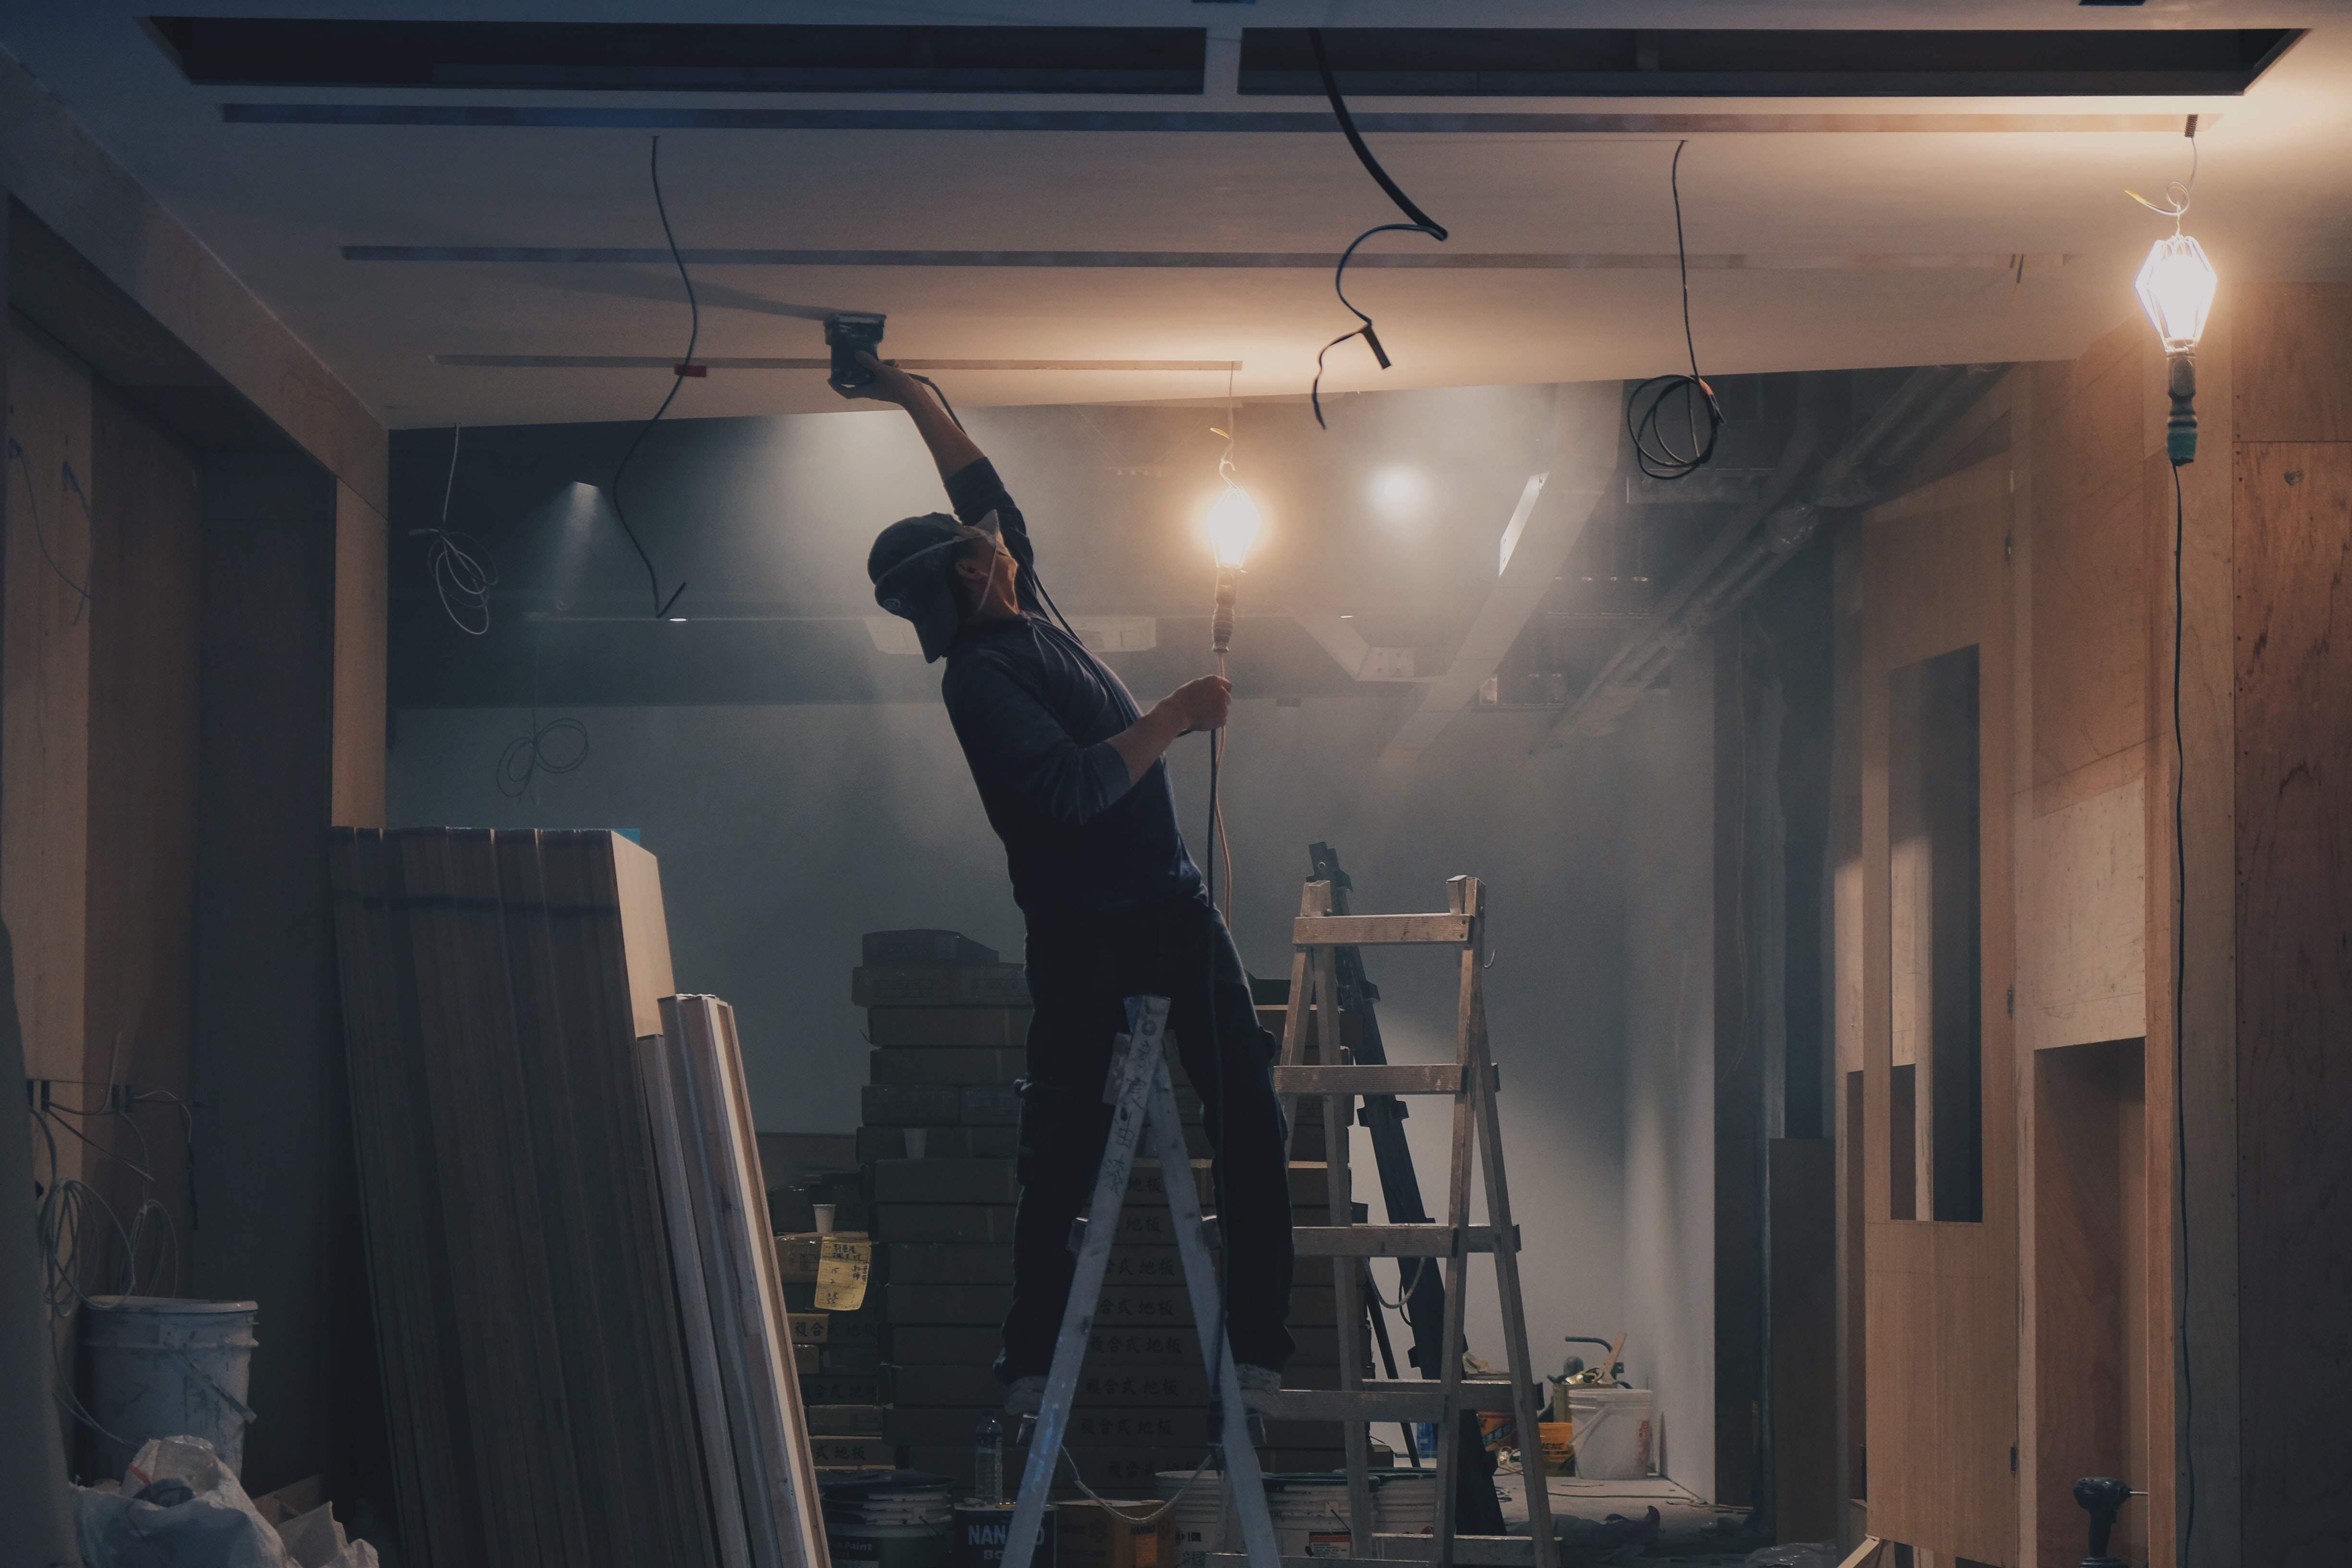 A man on a ladder renovating a room